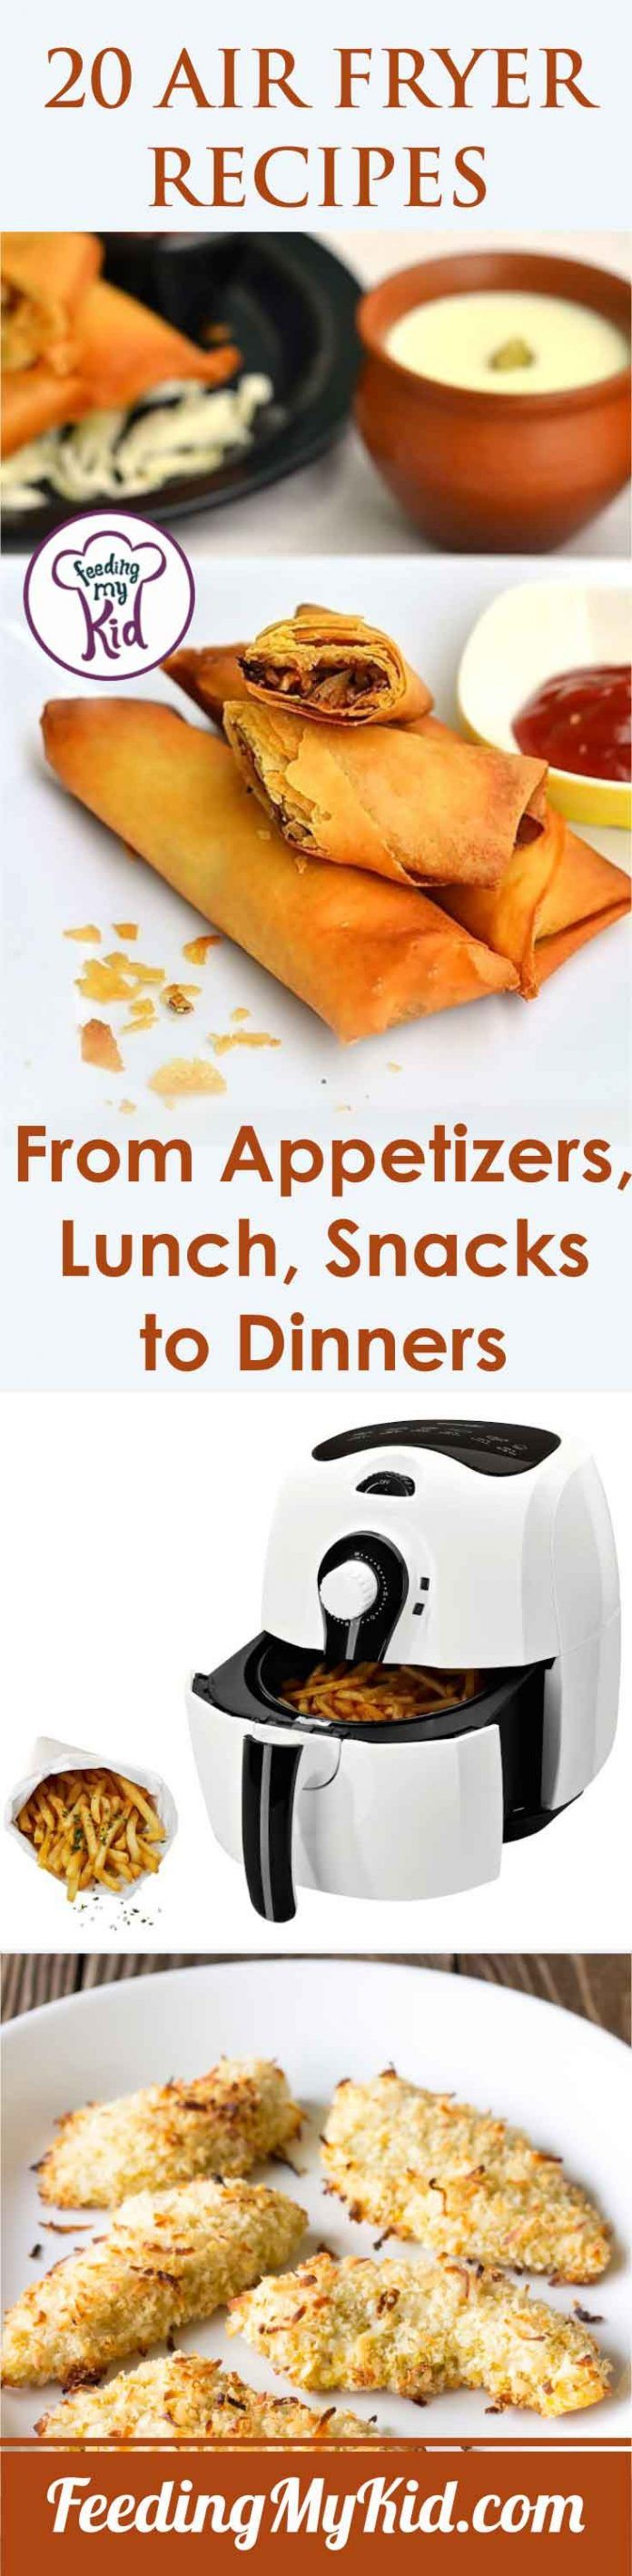 20 Air Fryer Recipes from Appetizers, Lunch, Snacks to